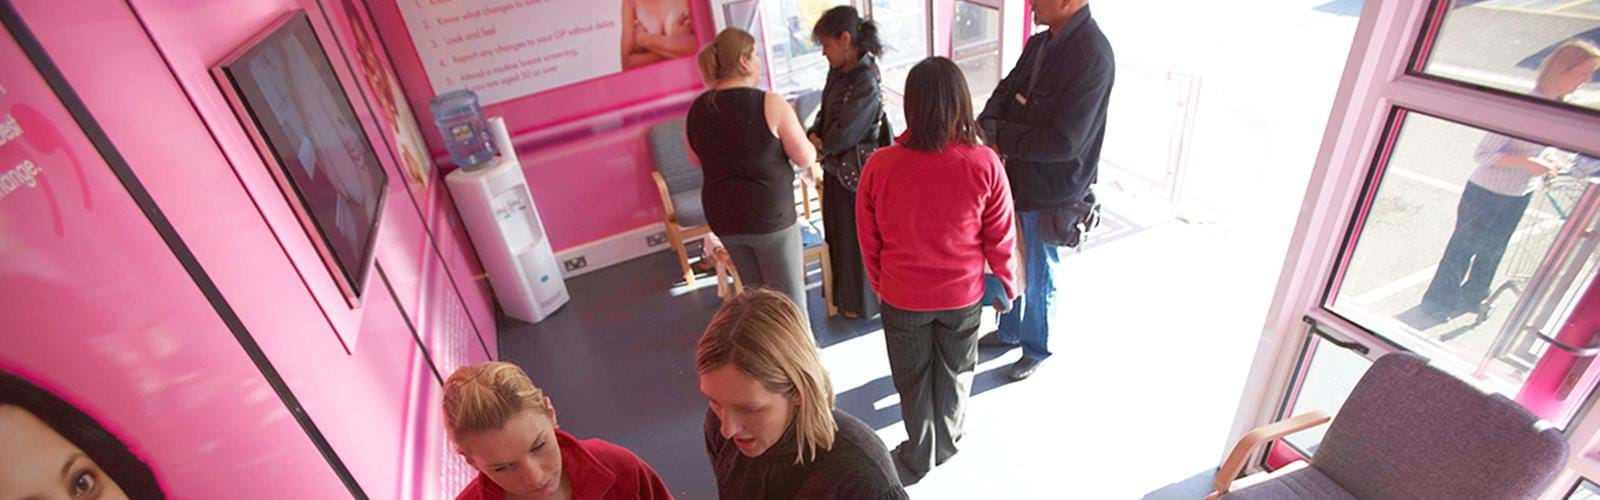 Breast Awareness Roadshow City & Hackney NHS (4)